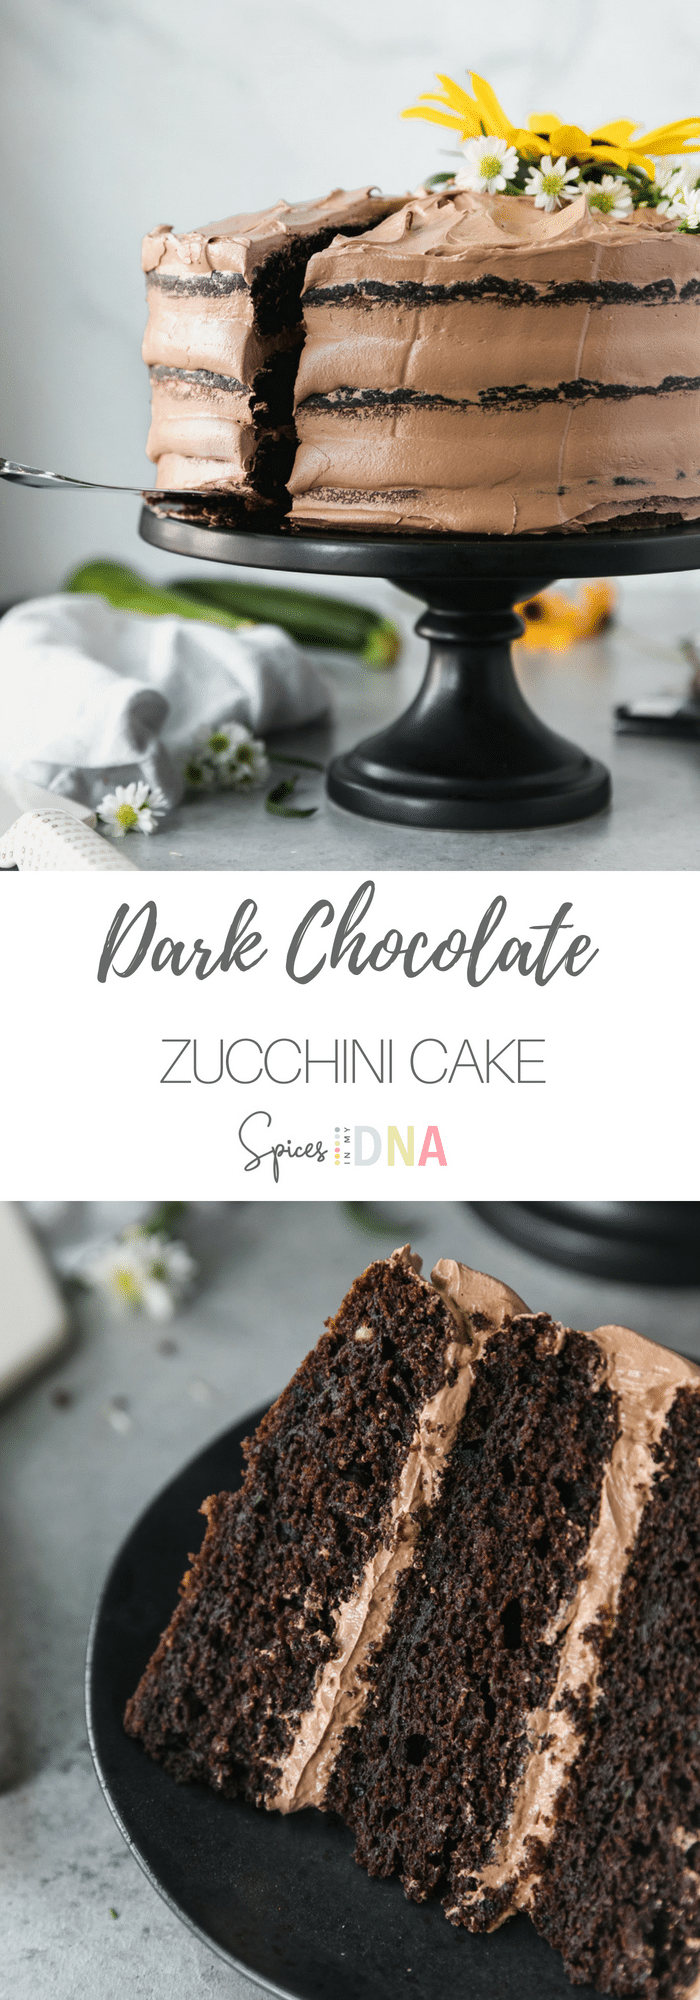 This Dark Chocolate Zucchini Cake is incredibly moist, filled with rich dark chocolate flavor, and topped with a fluffy dark chocolate swiss meringue buttercream. The zucchini is absolutely undetectable, but it lends the best texture to the cake. Perfect for using up all of the late summer zucchini! #chocolate #zucchini #cake